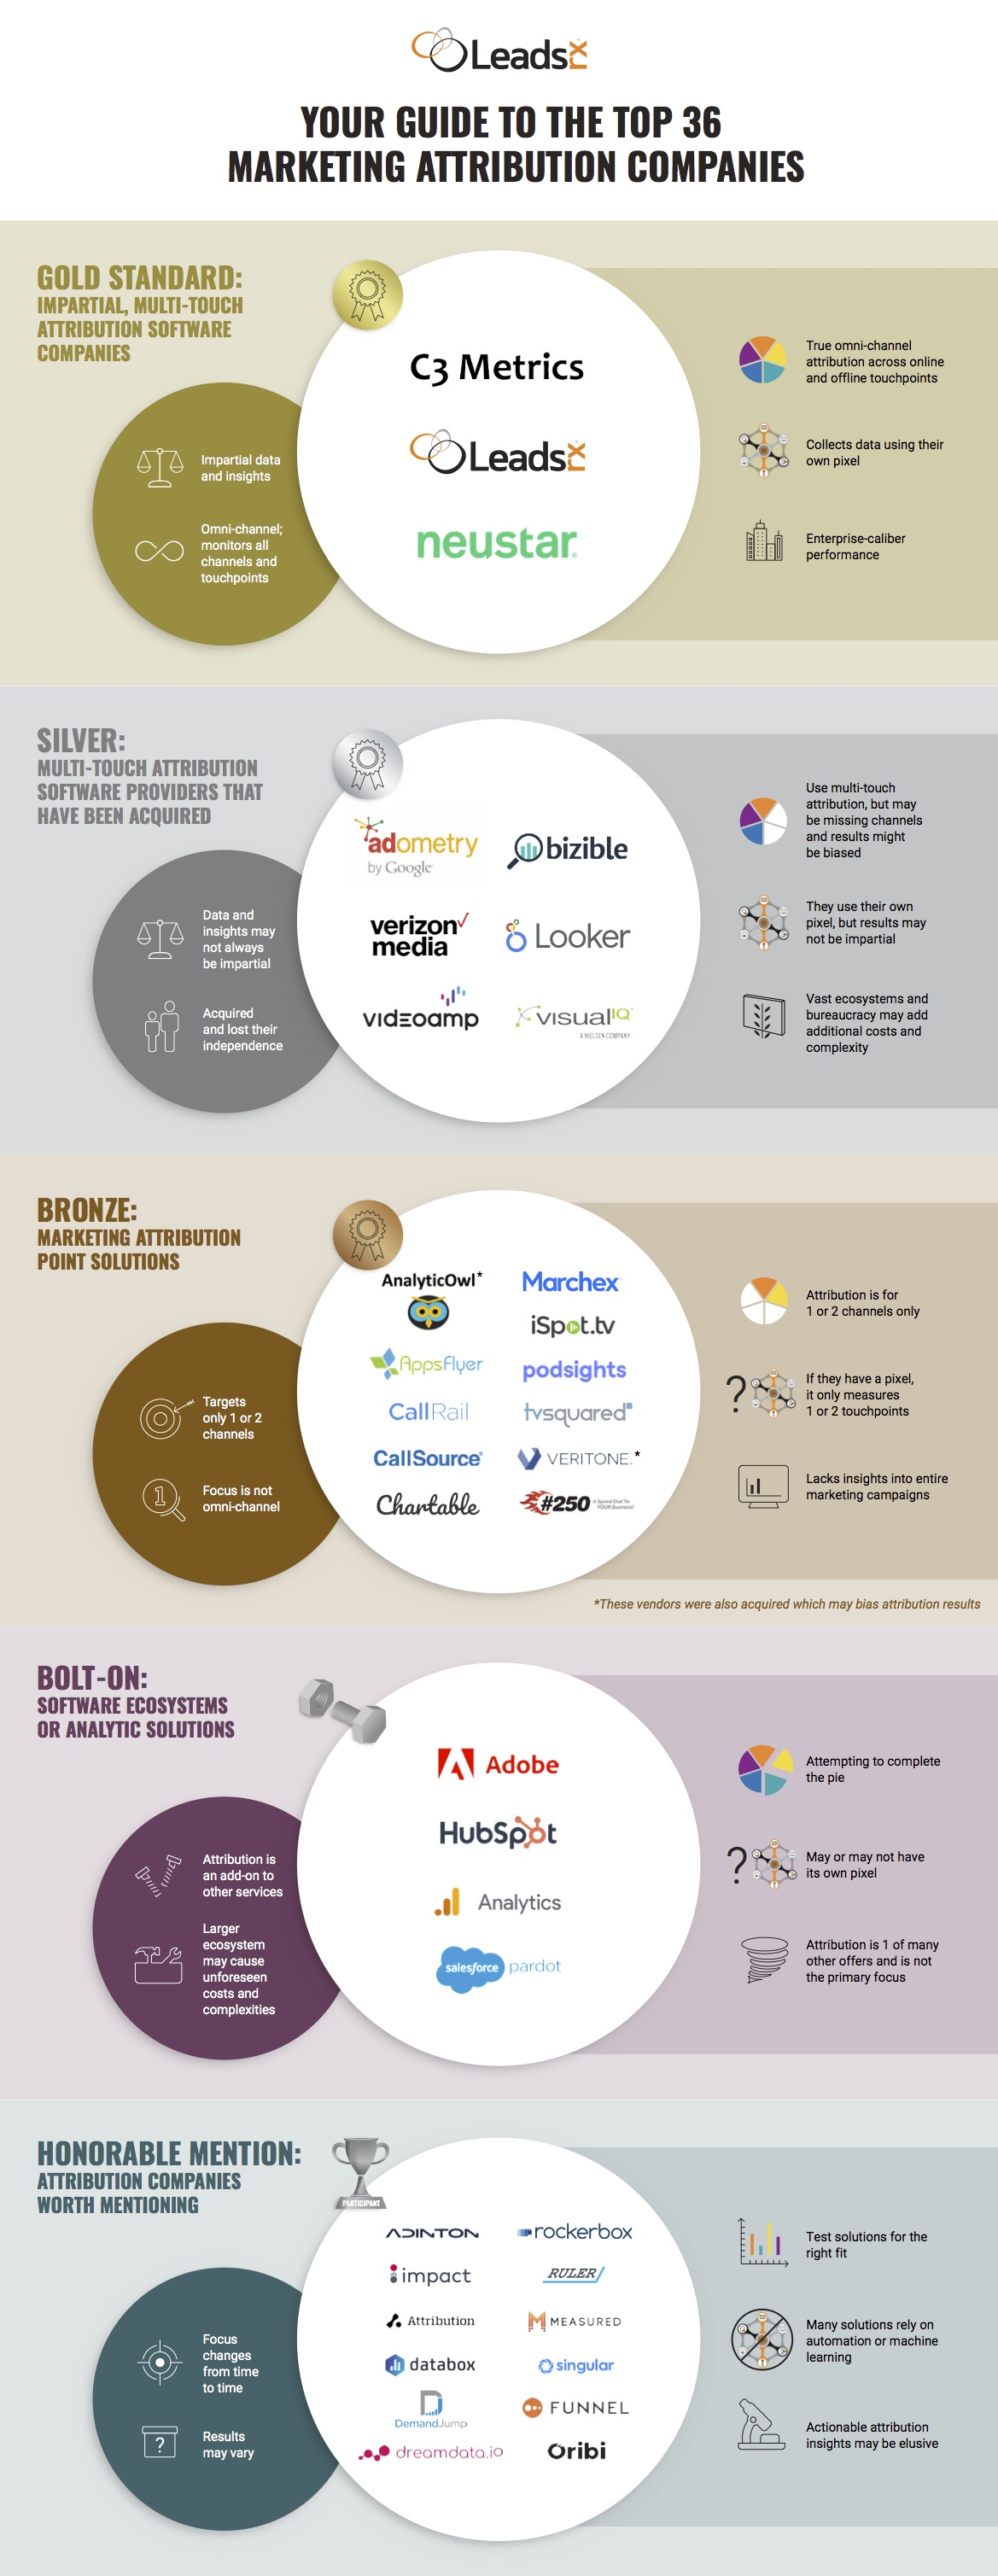 Top 36 Marketing Attribution Companies by LeadsRx